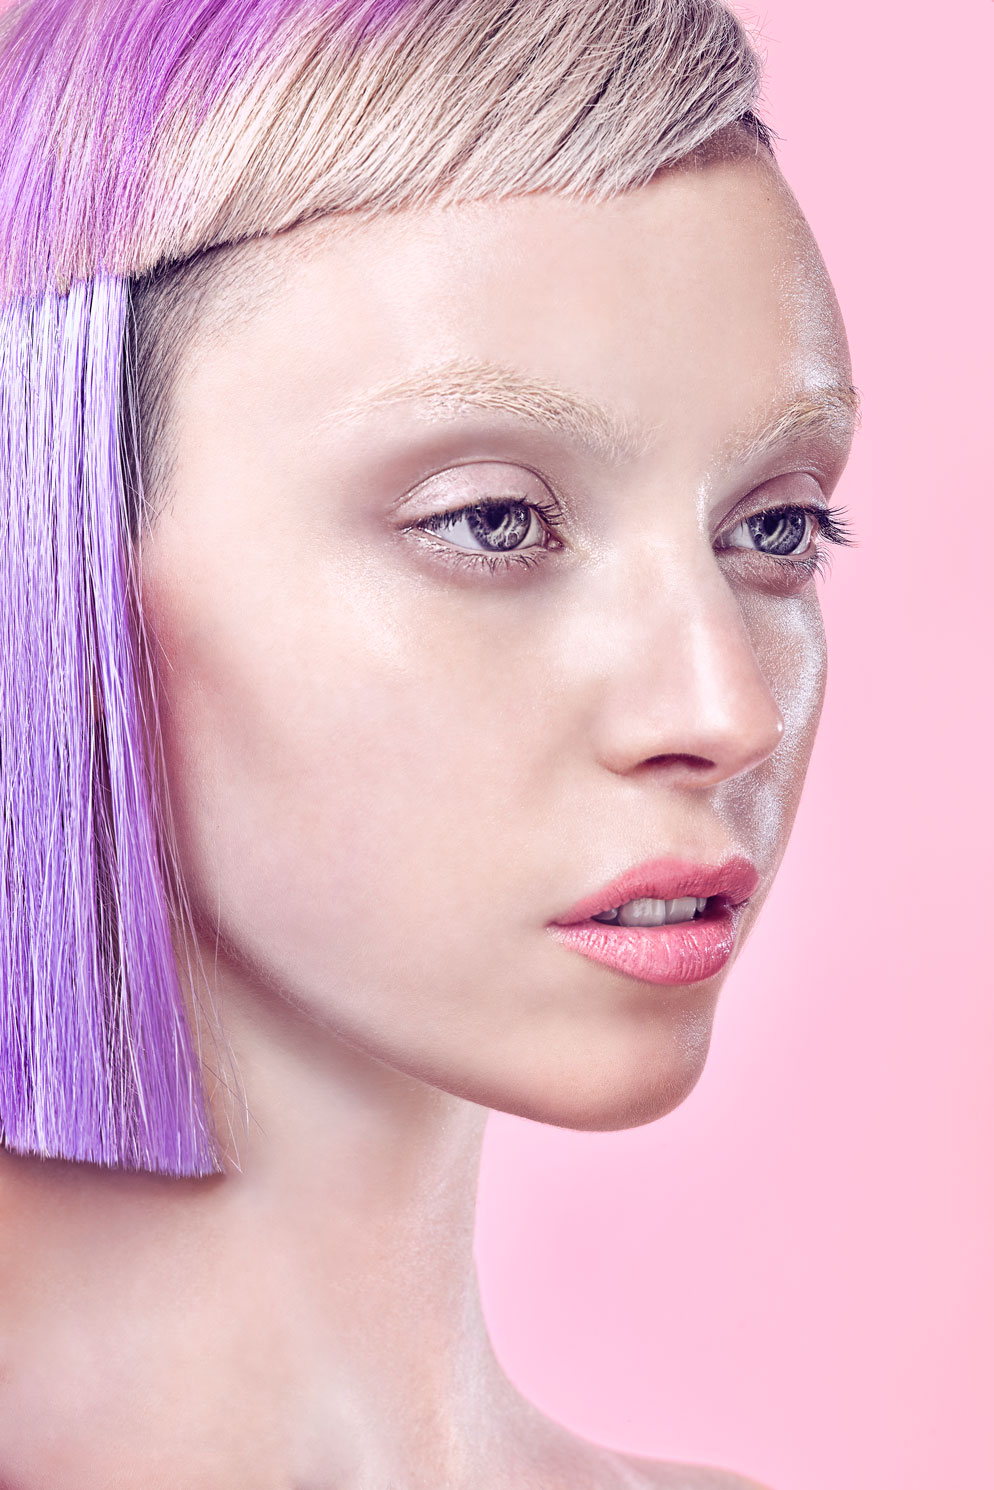 Beauty Photography with Dyed Hair